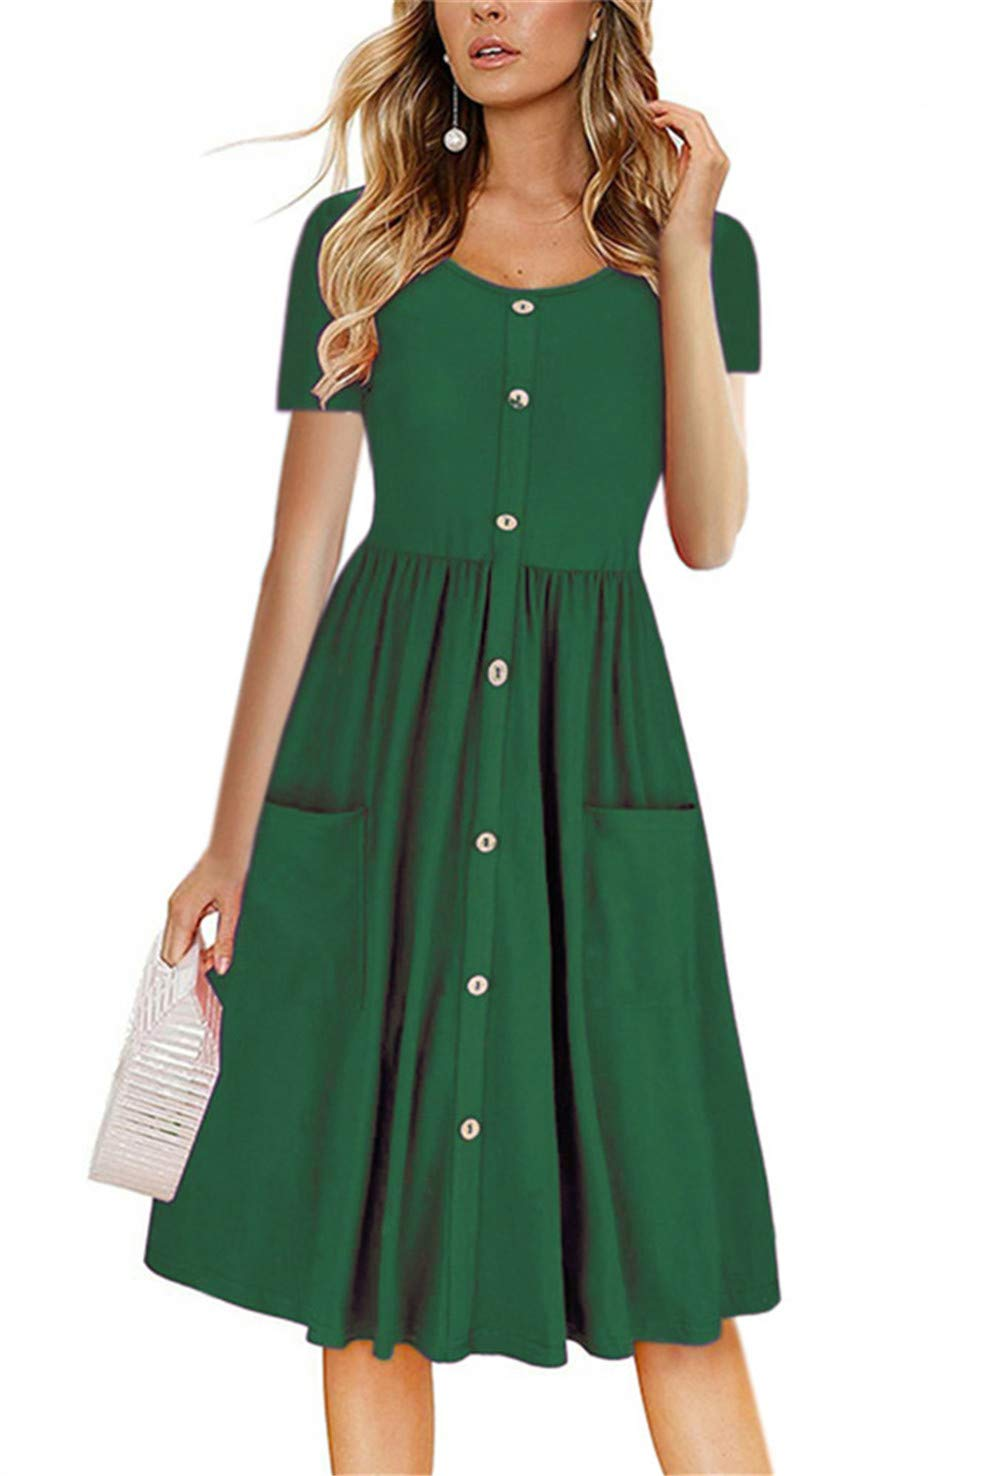 LAMISSCHE Womens Summer Casual Short Sleeve V Neck Button Down A-line Dress with Pockets(Green,M) by LAMISSCHE